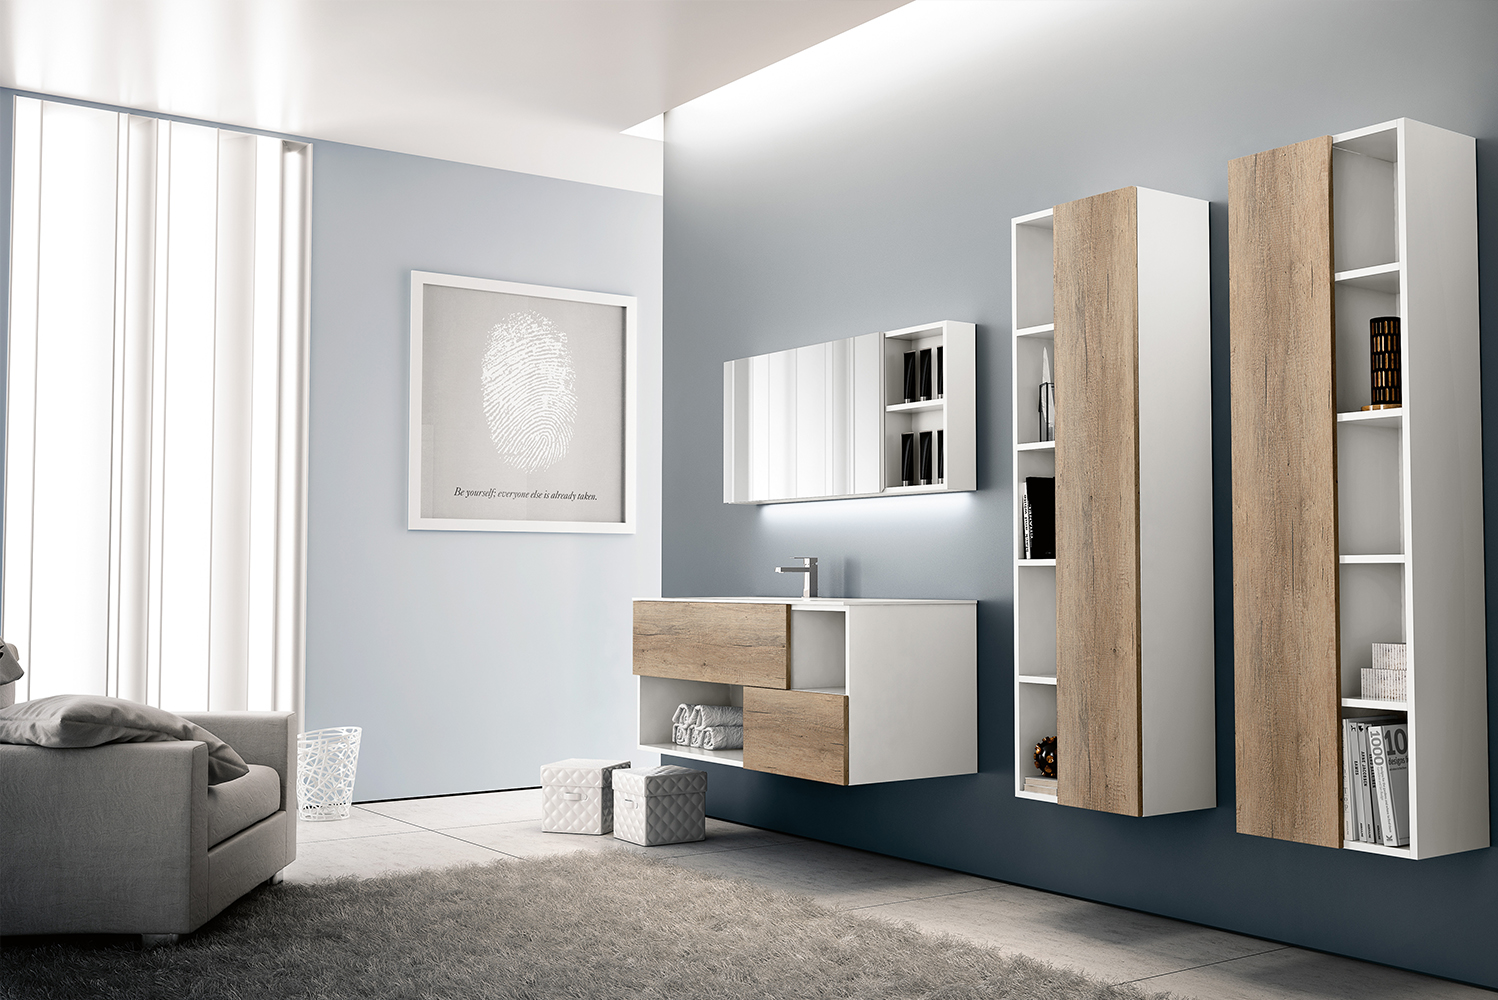 The collection also offers tall storage cabinets that complement the vanity's horizontal styling.